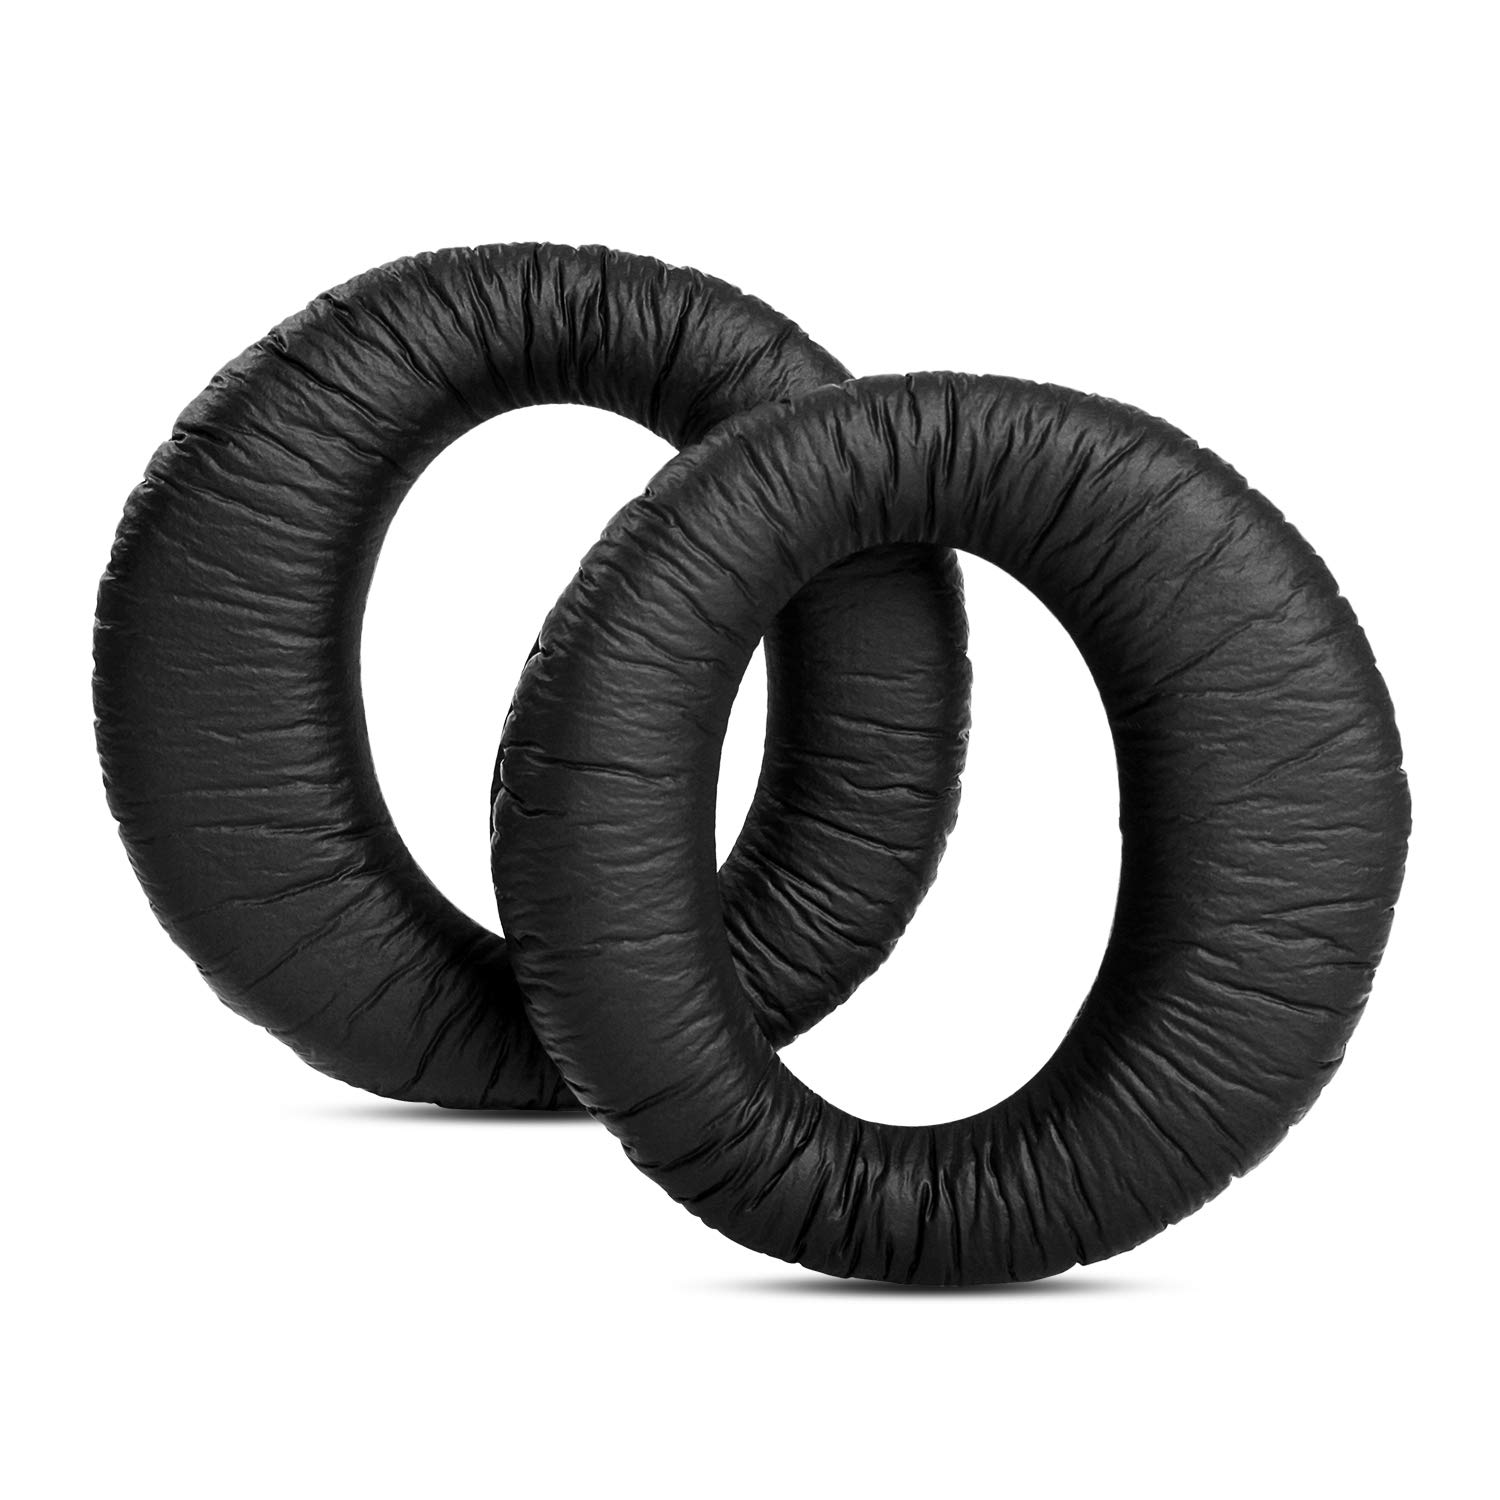 Replacement Foam Earpads Pillow Ear Pads Cushions Cover Cups Repair Parts Compatible with Sony MDR-RF985R RF985R RF985RK Headphones (Black)